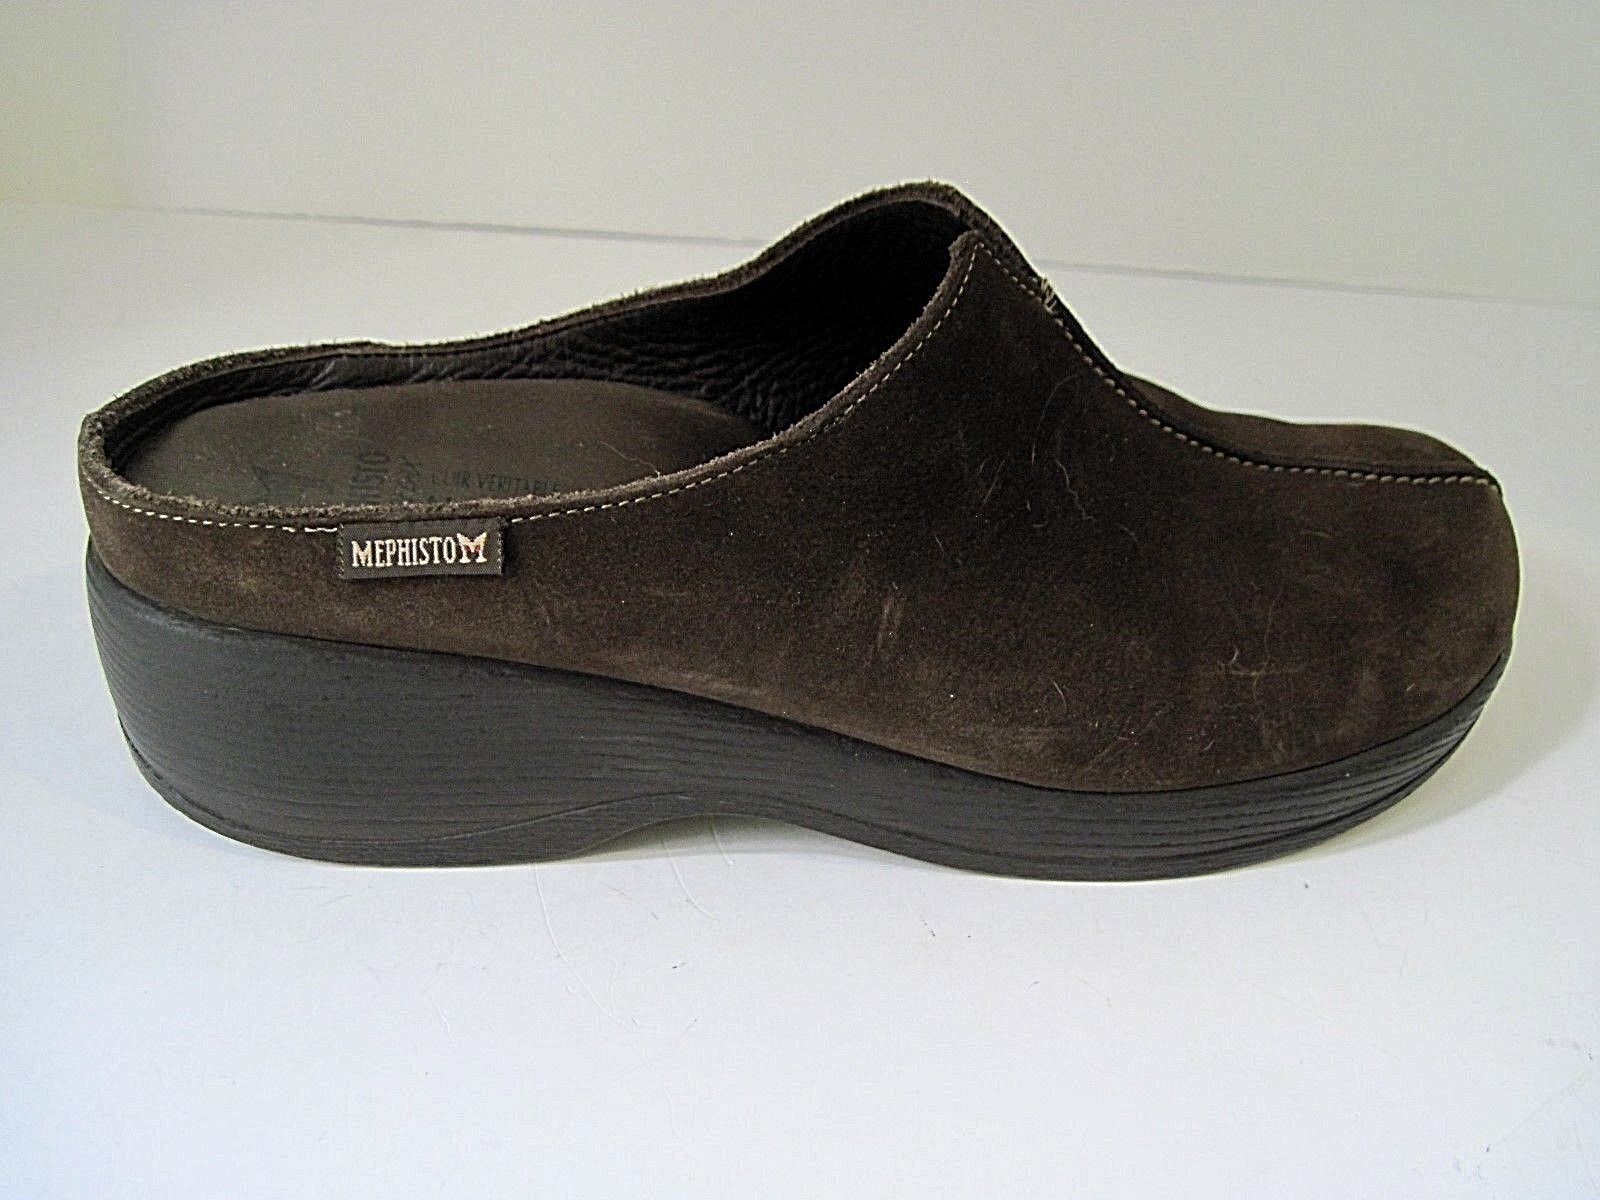 MEPHISTO Nature Is Future Brown Suede Clogs Slip-on shoes Mules Size US 8